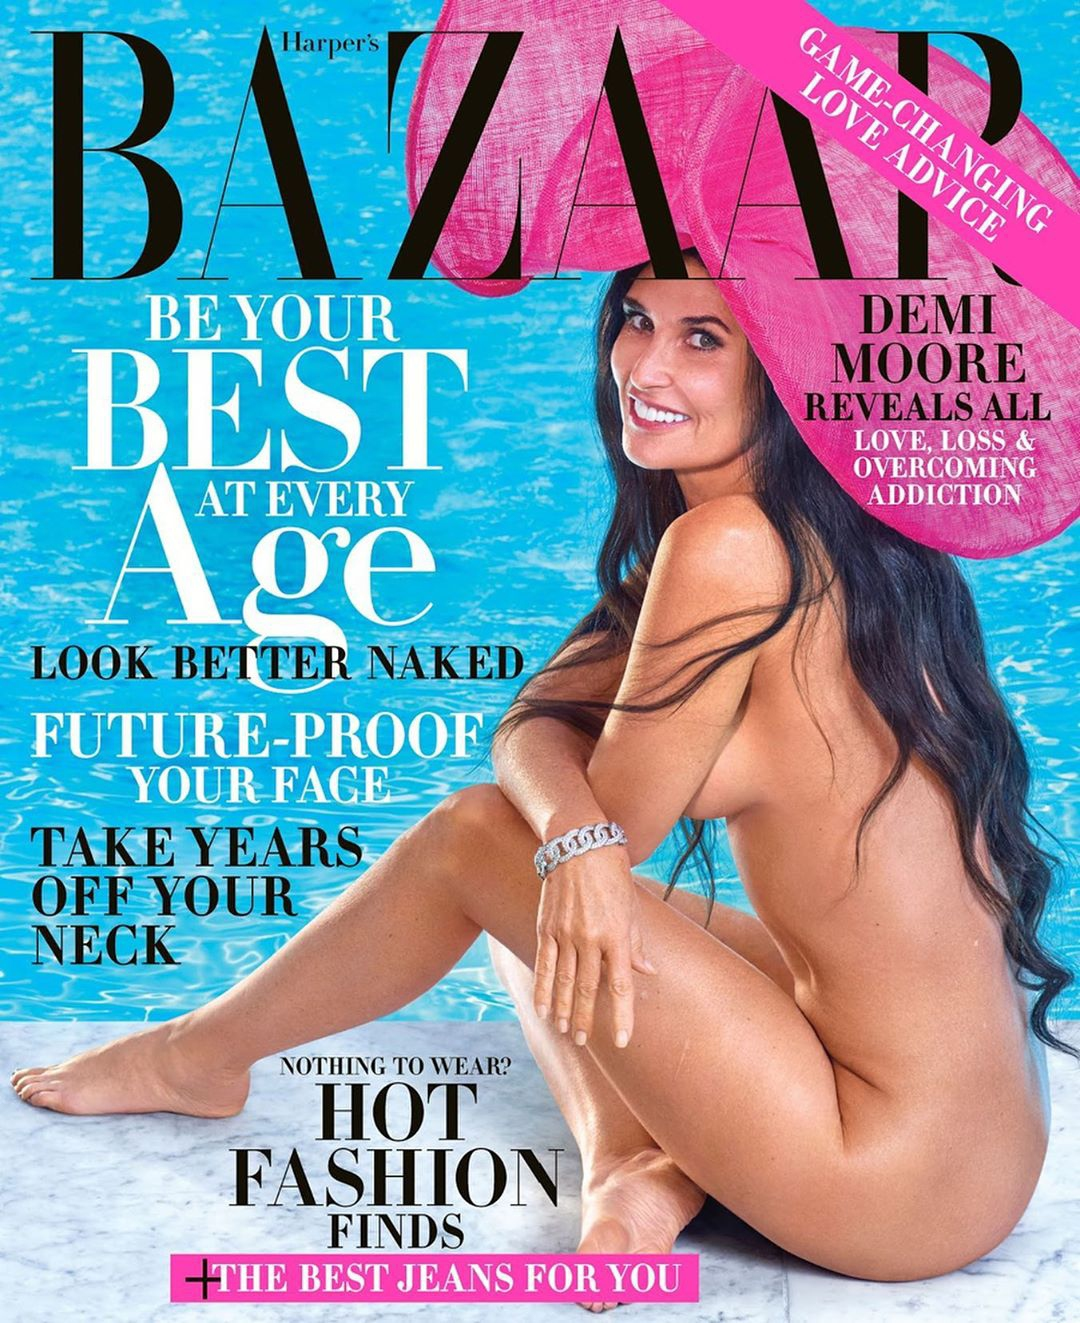 Demi Moore Opens Up on Love, Loss & Overcoming Addiction as She Covers Harper's Bazaar's Latest Issue